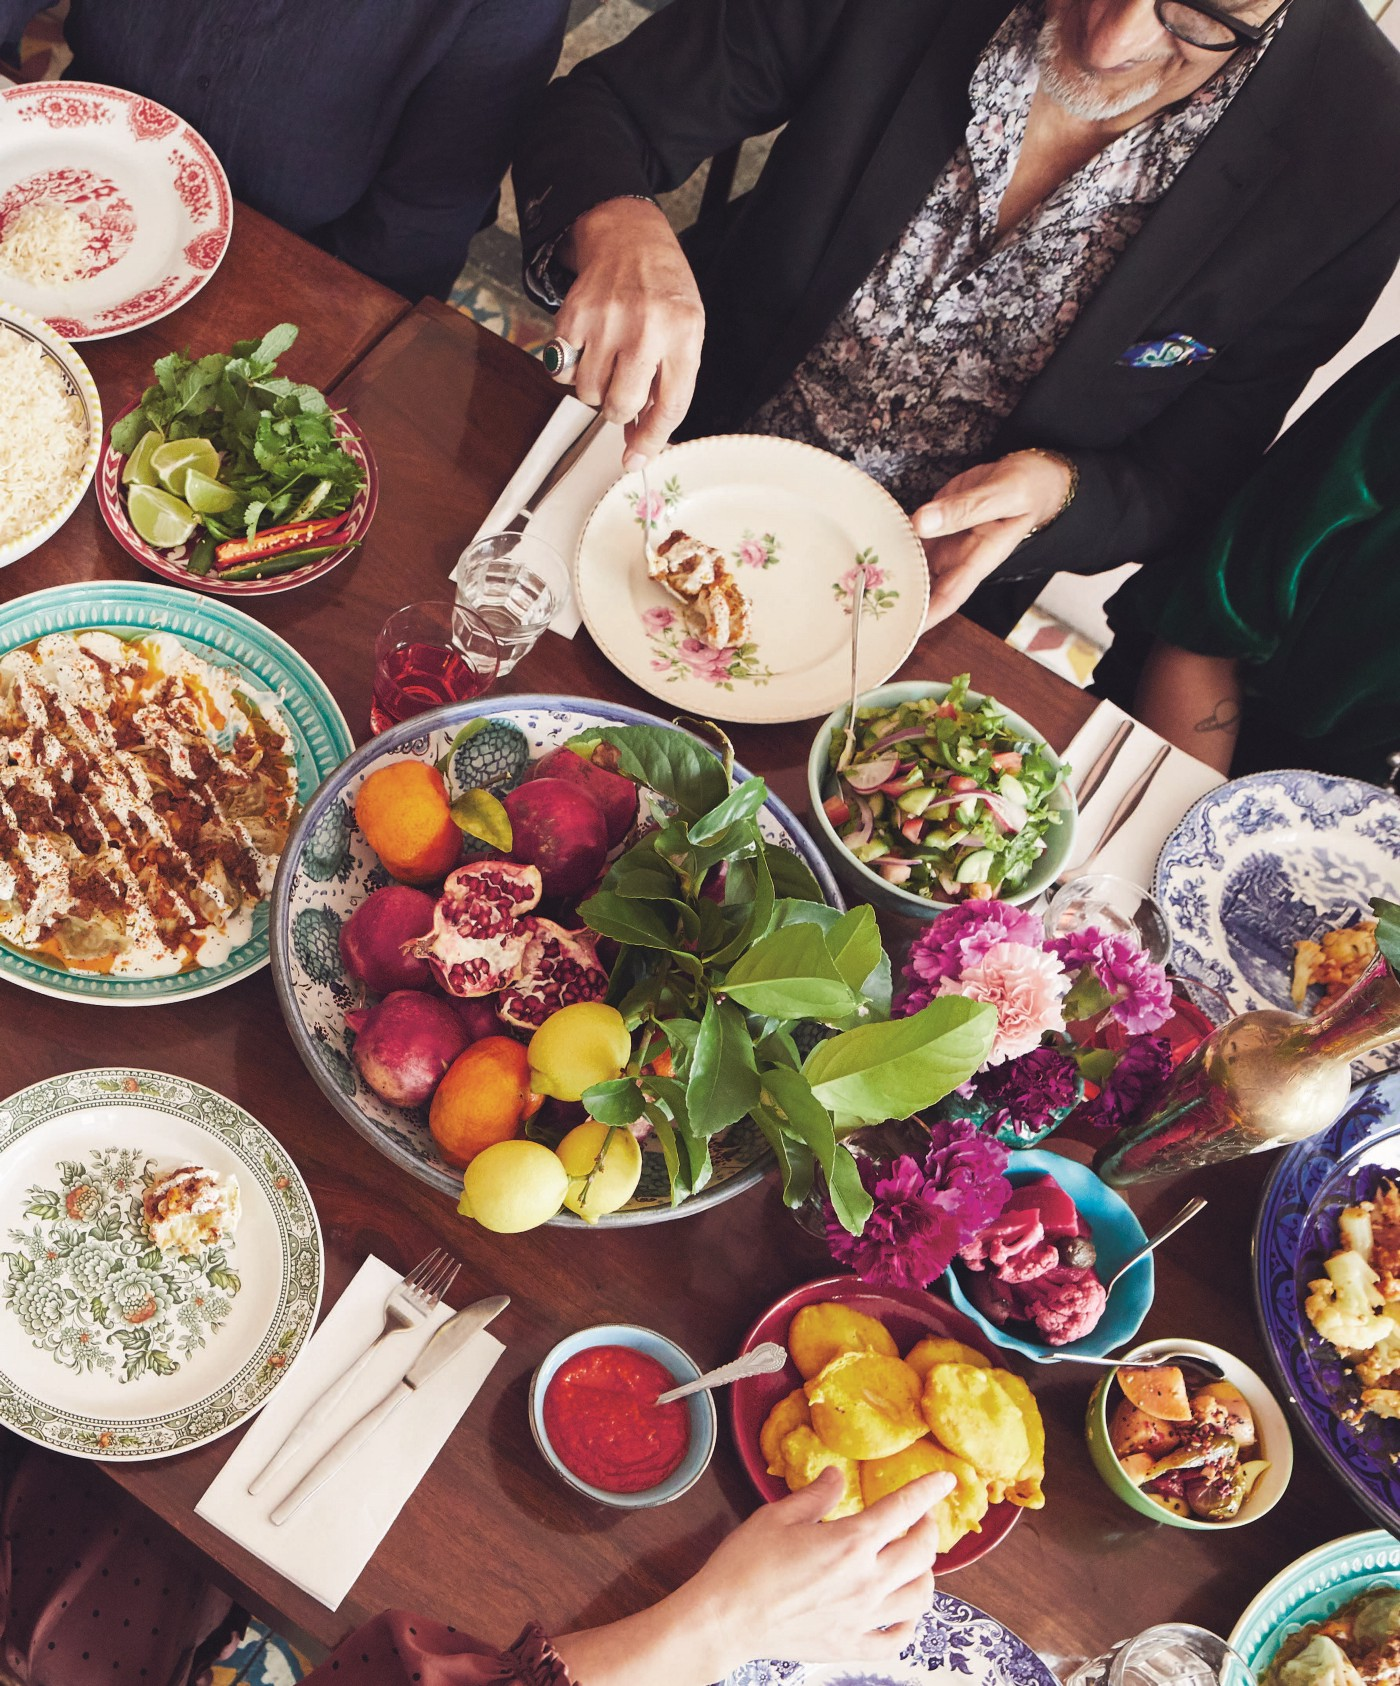 A family dinner with many dishes of colorful food.